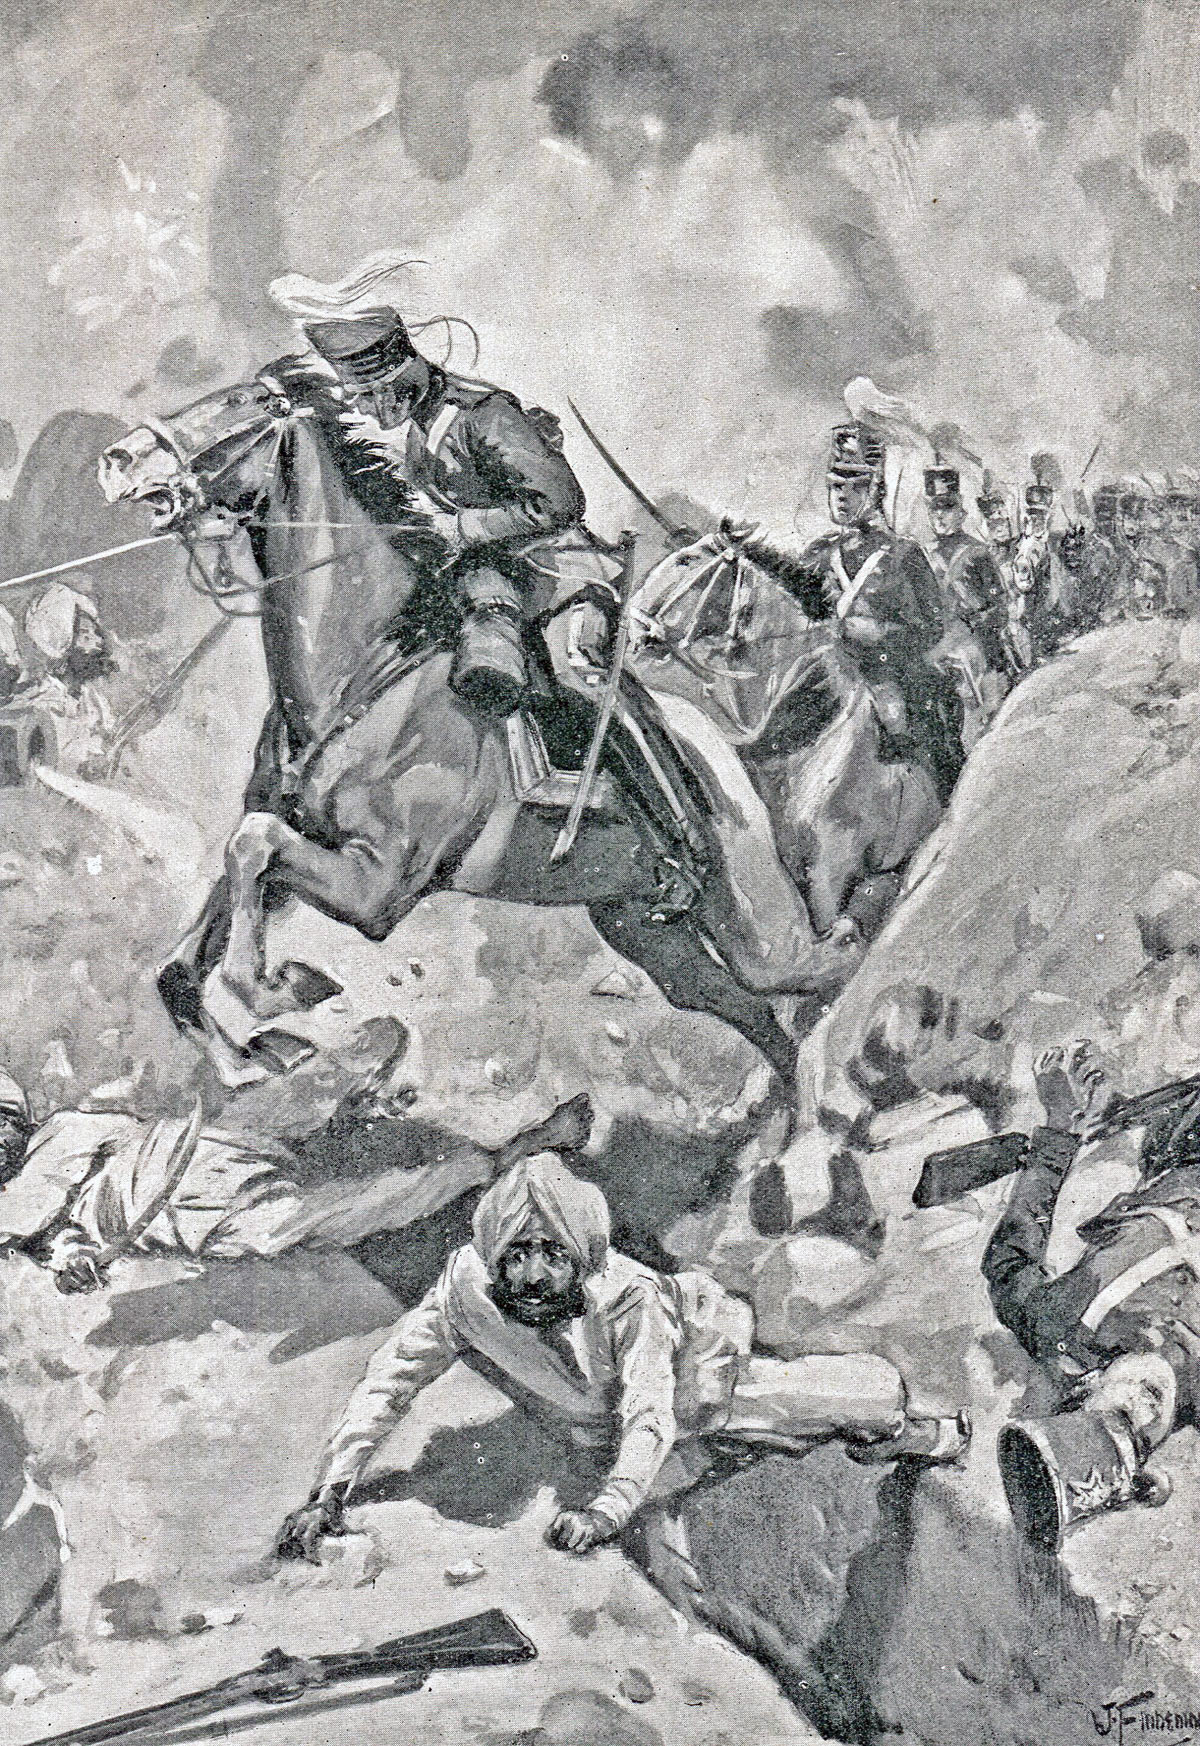 Sir Joseph Thackwell leads 3rd King's Light Dragoons through the Sikh rampart at the Battle of Sobraon on 10th February 1846 during the First Sikh War